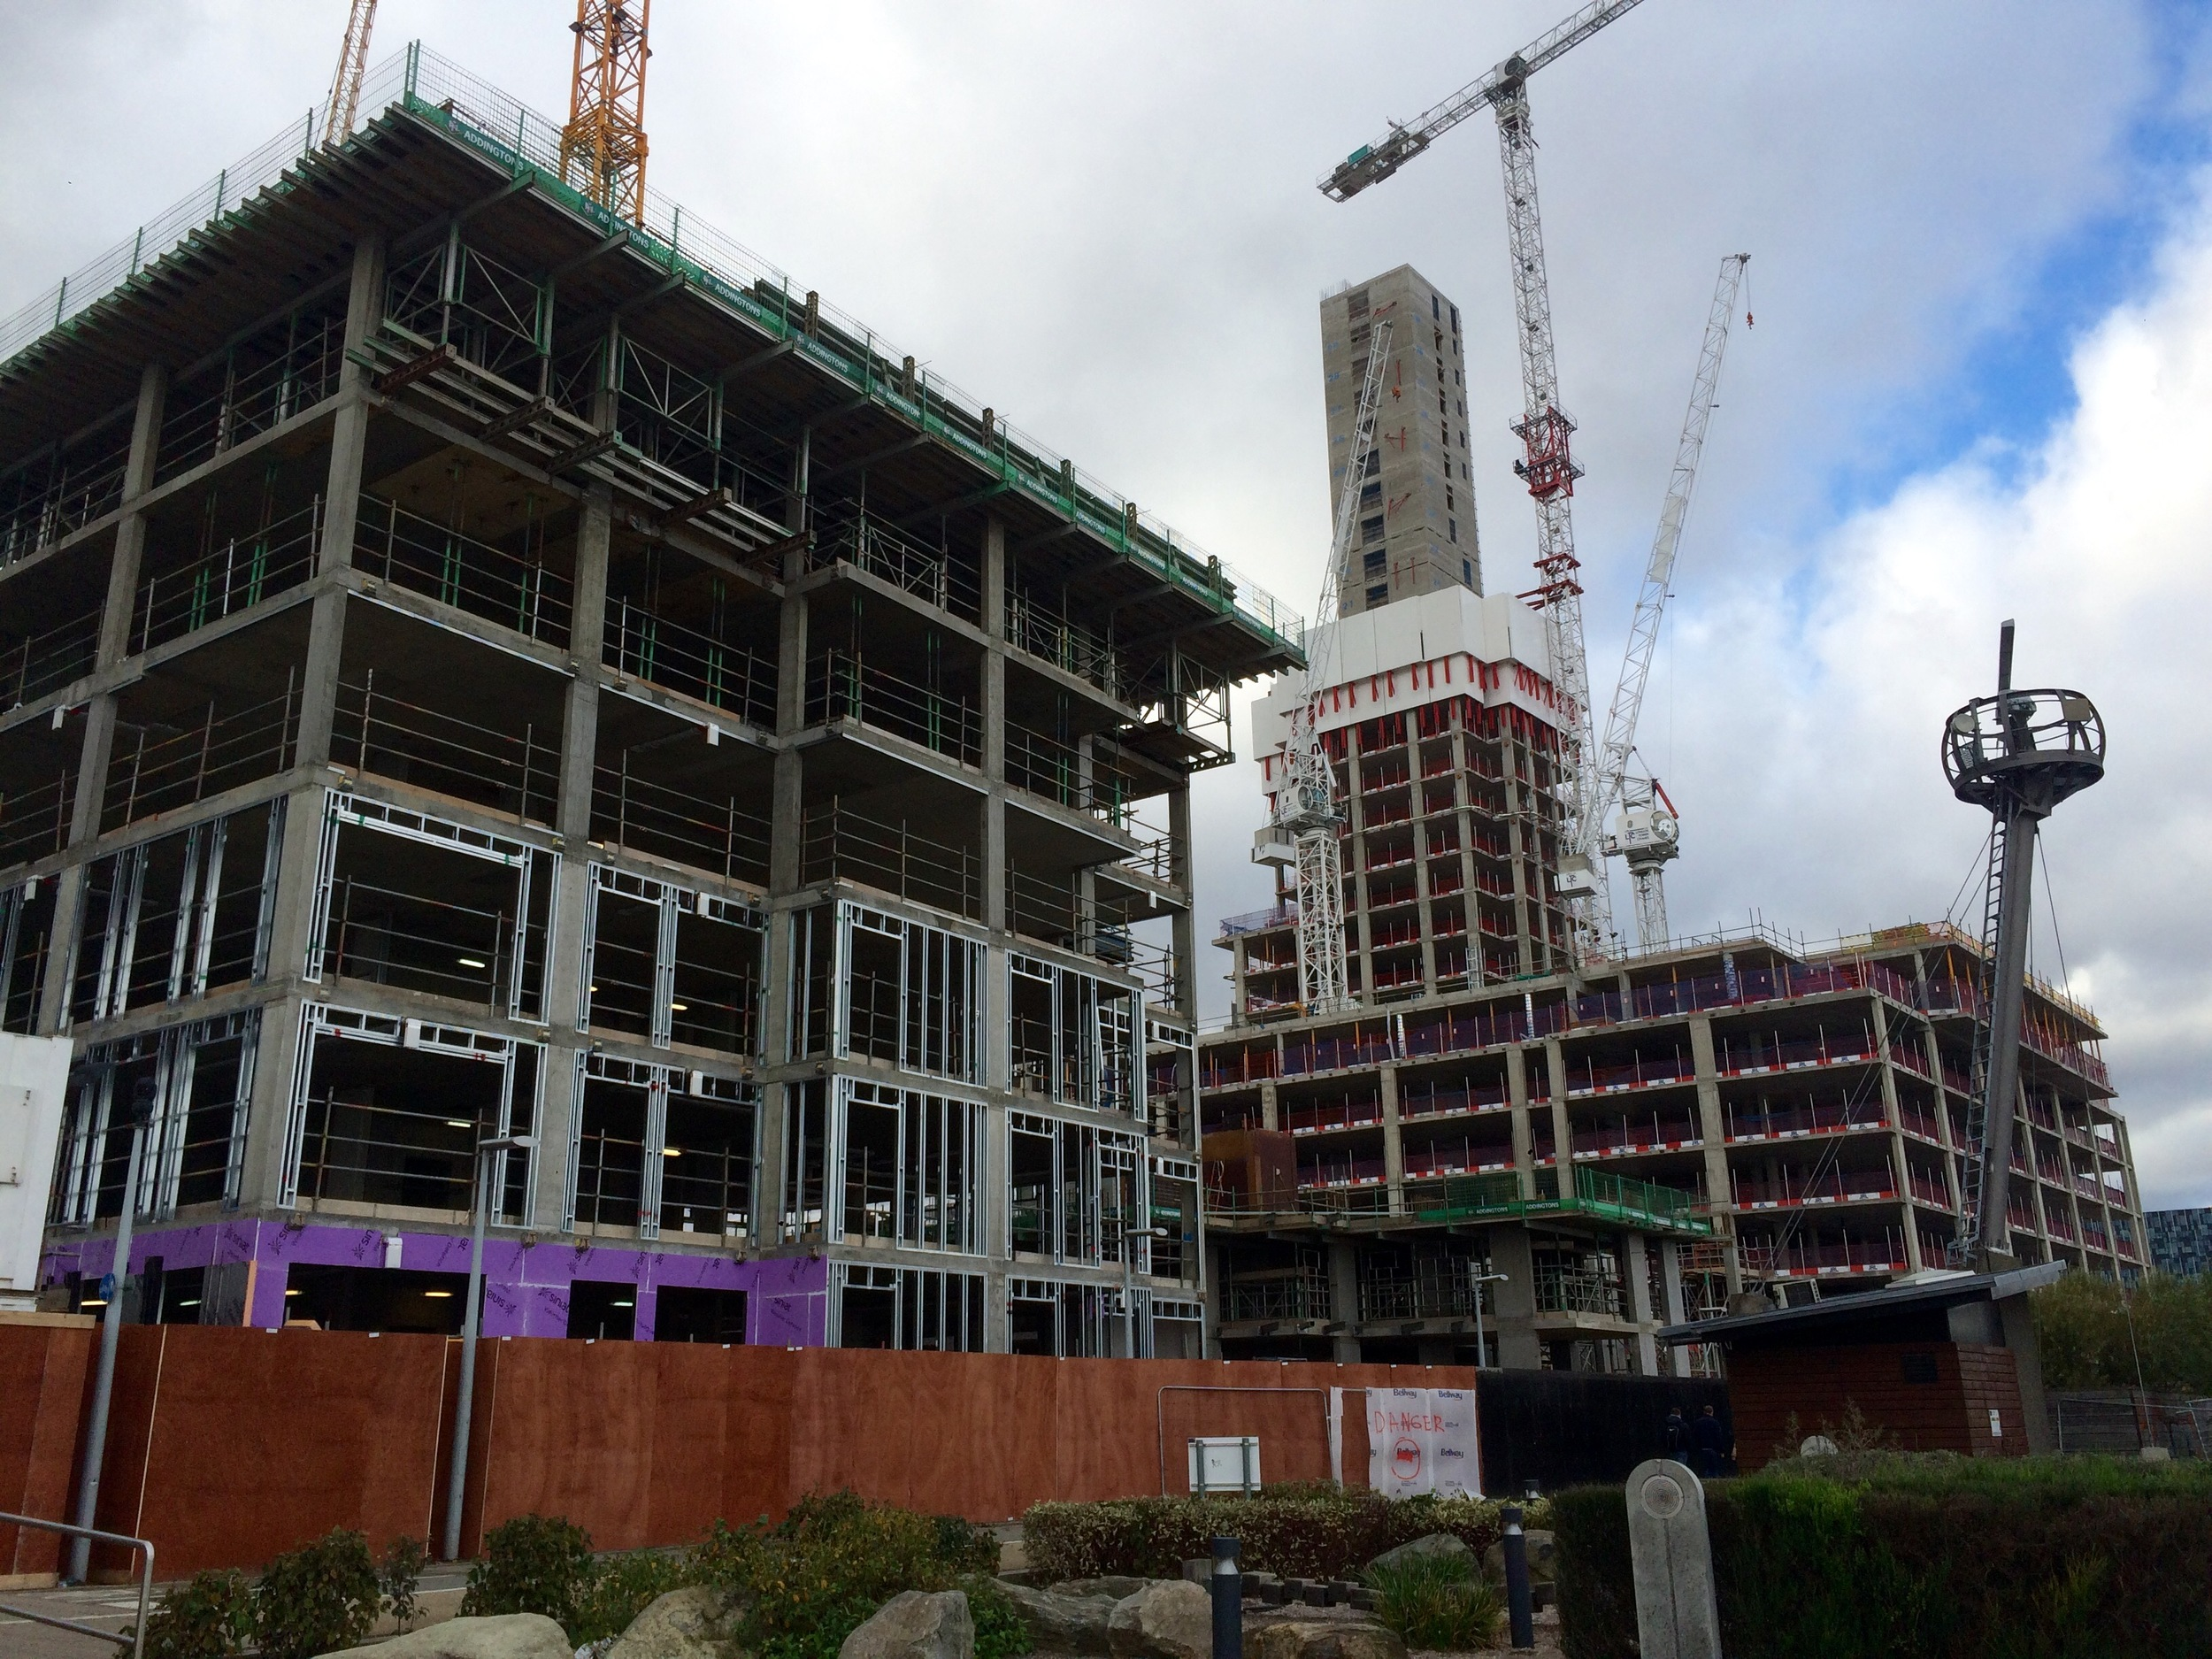 View northwest from Olympian Way - first few floors of the 23 storey Lighterman tower, between the associated affordable homes (left) and Waterman (right) -Nov 2015 [ greenpenlondon ]